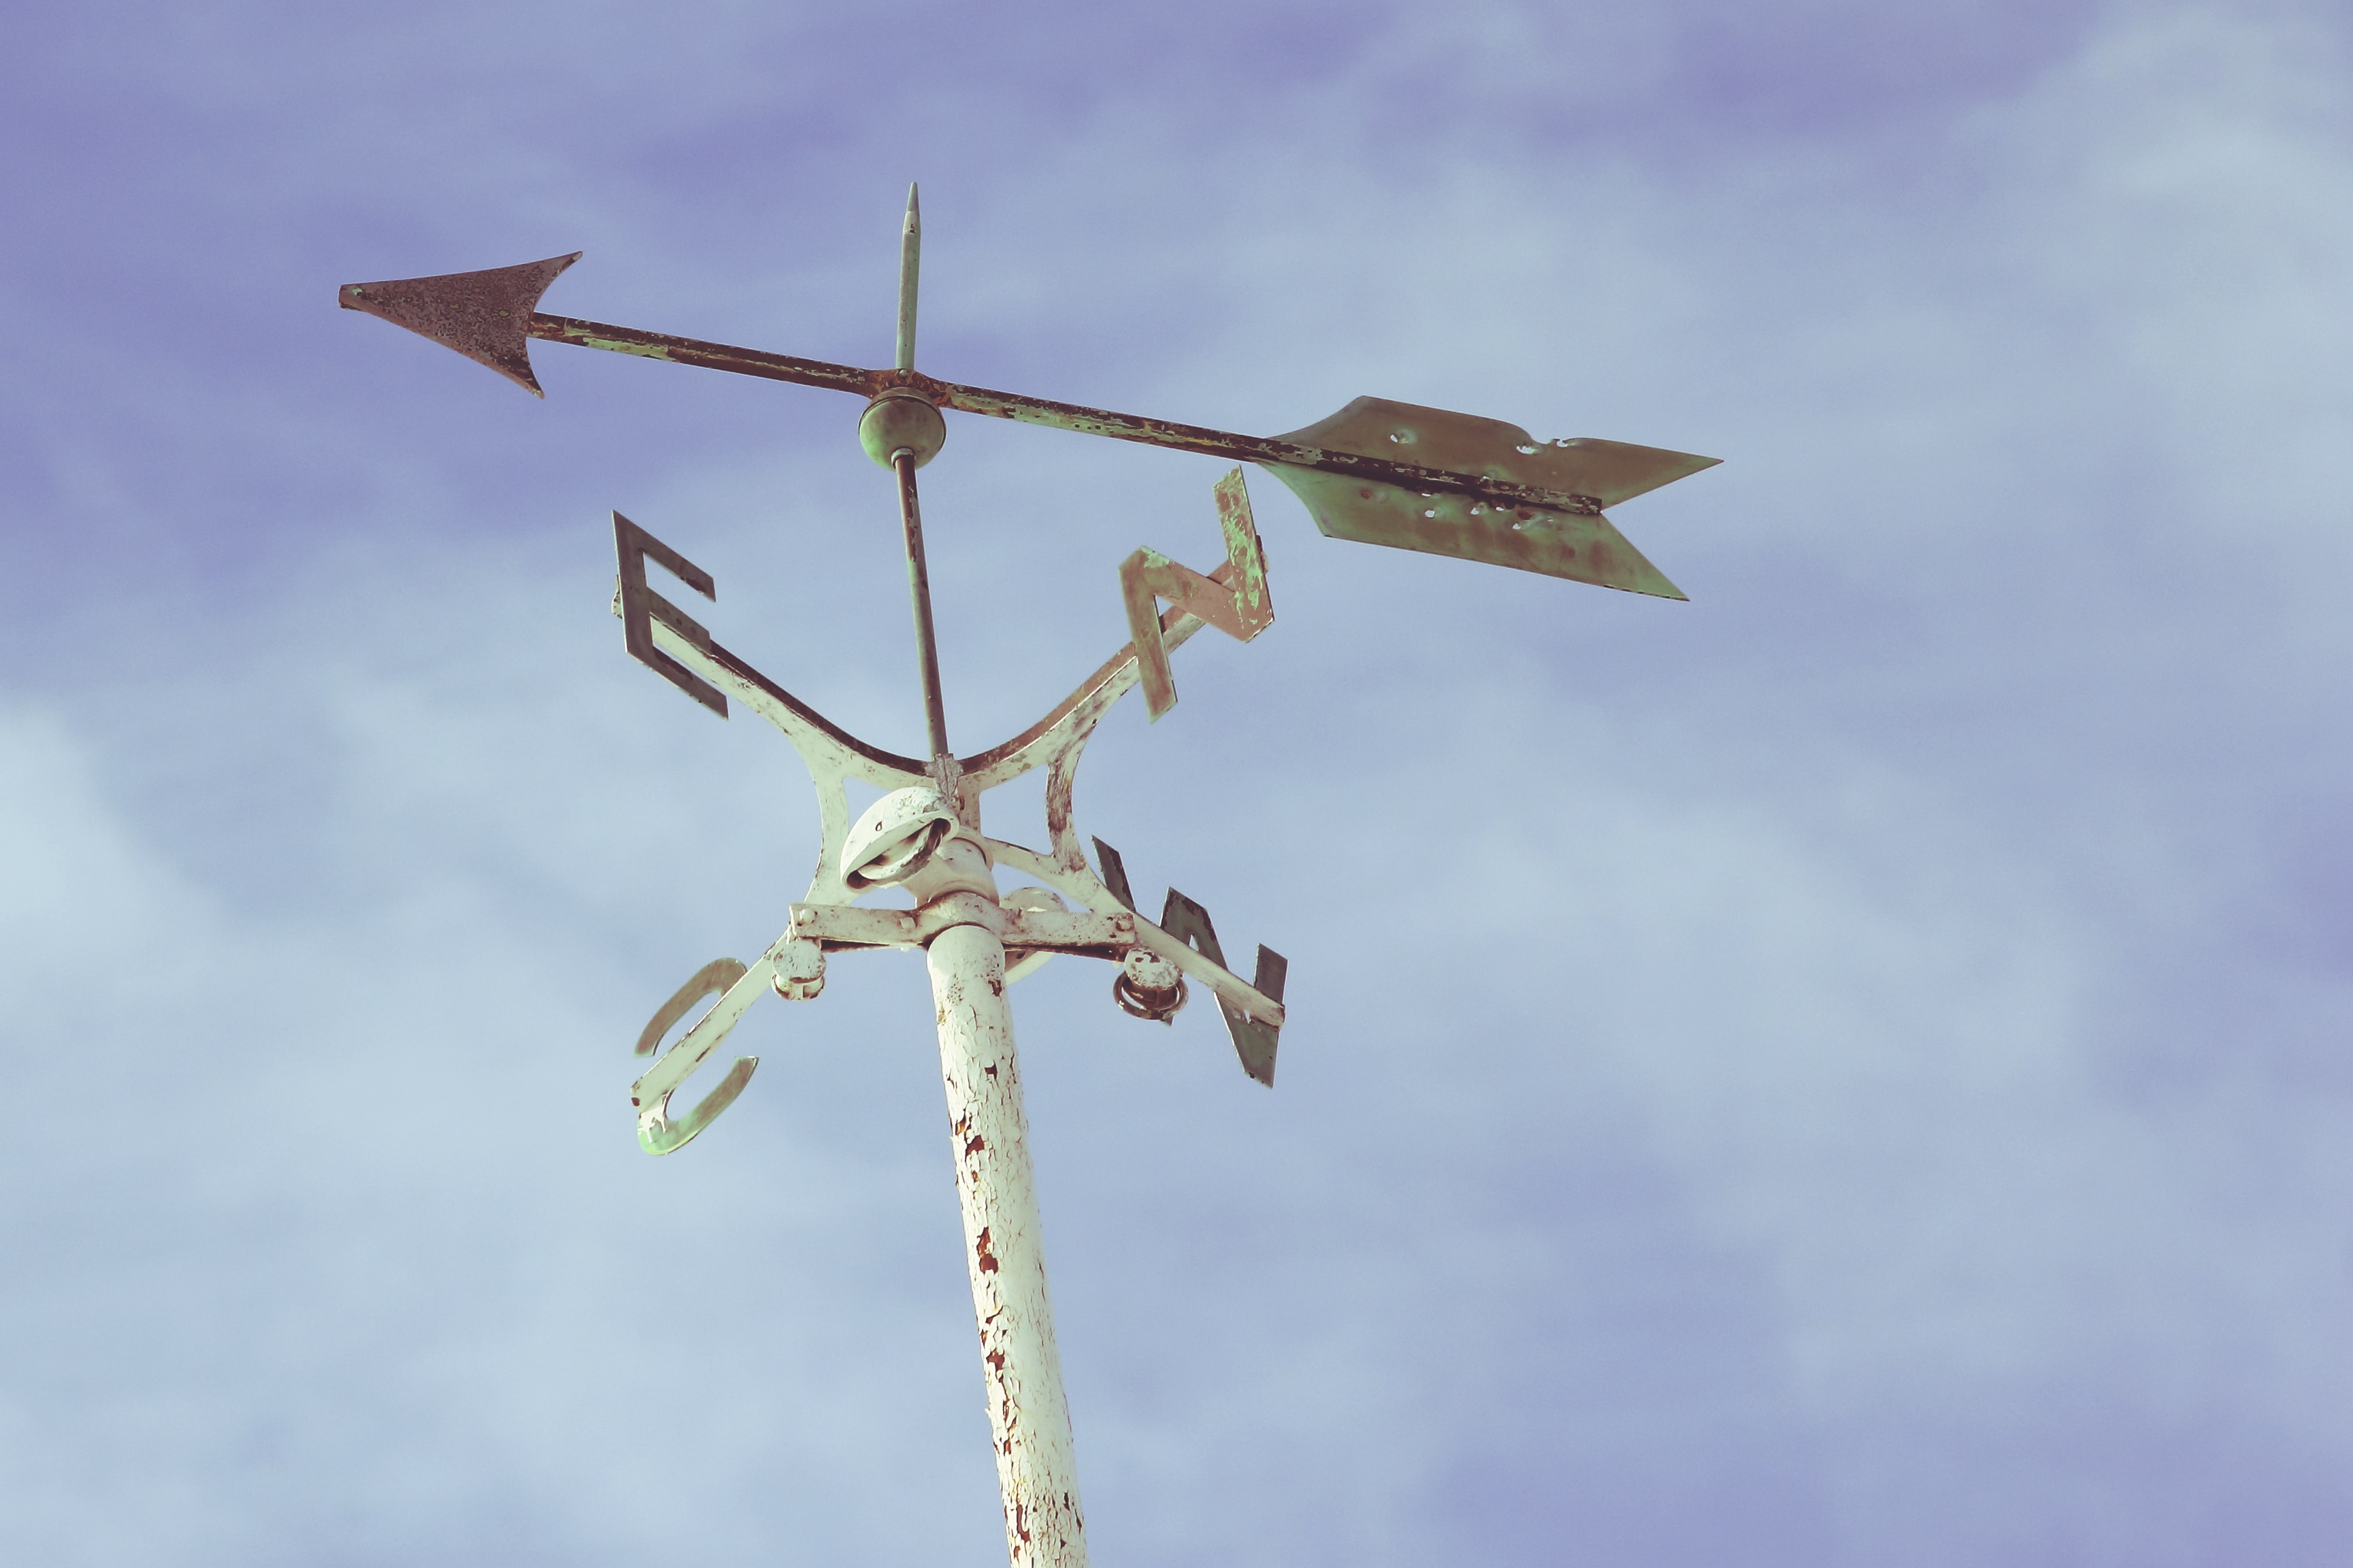 Image of a weather vane